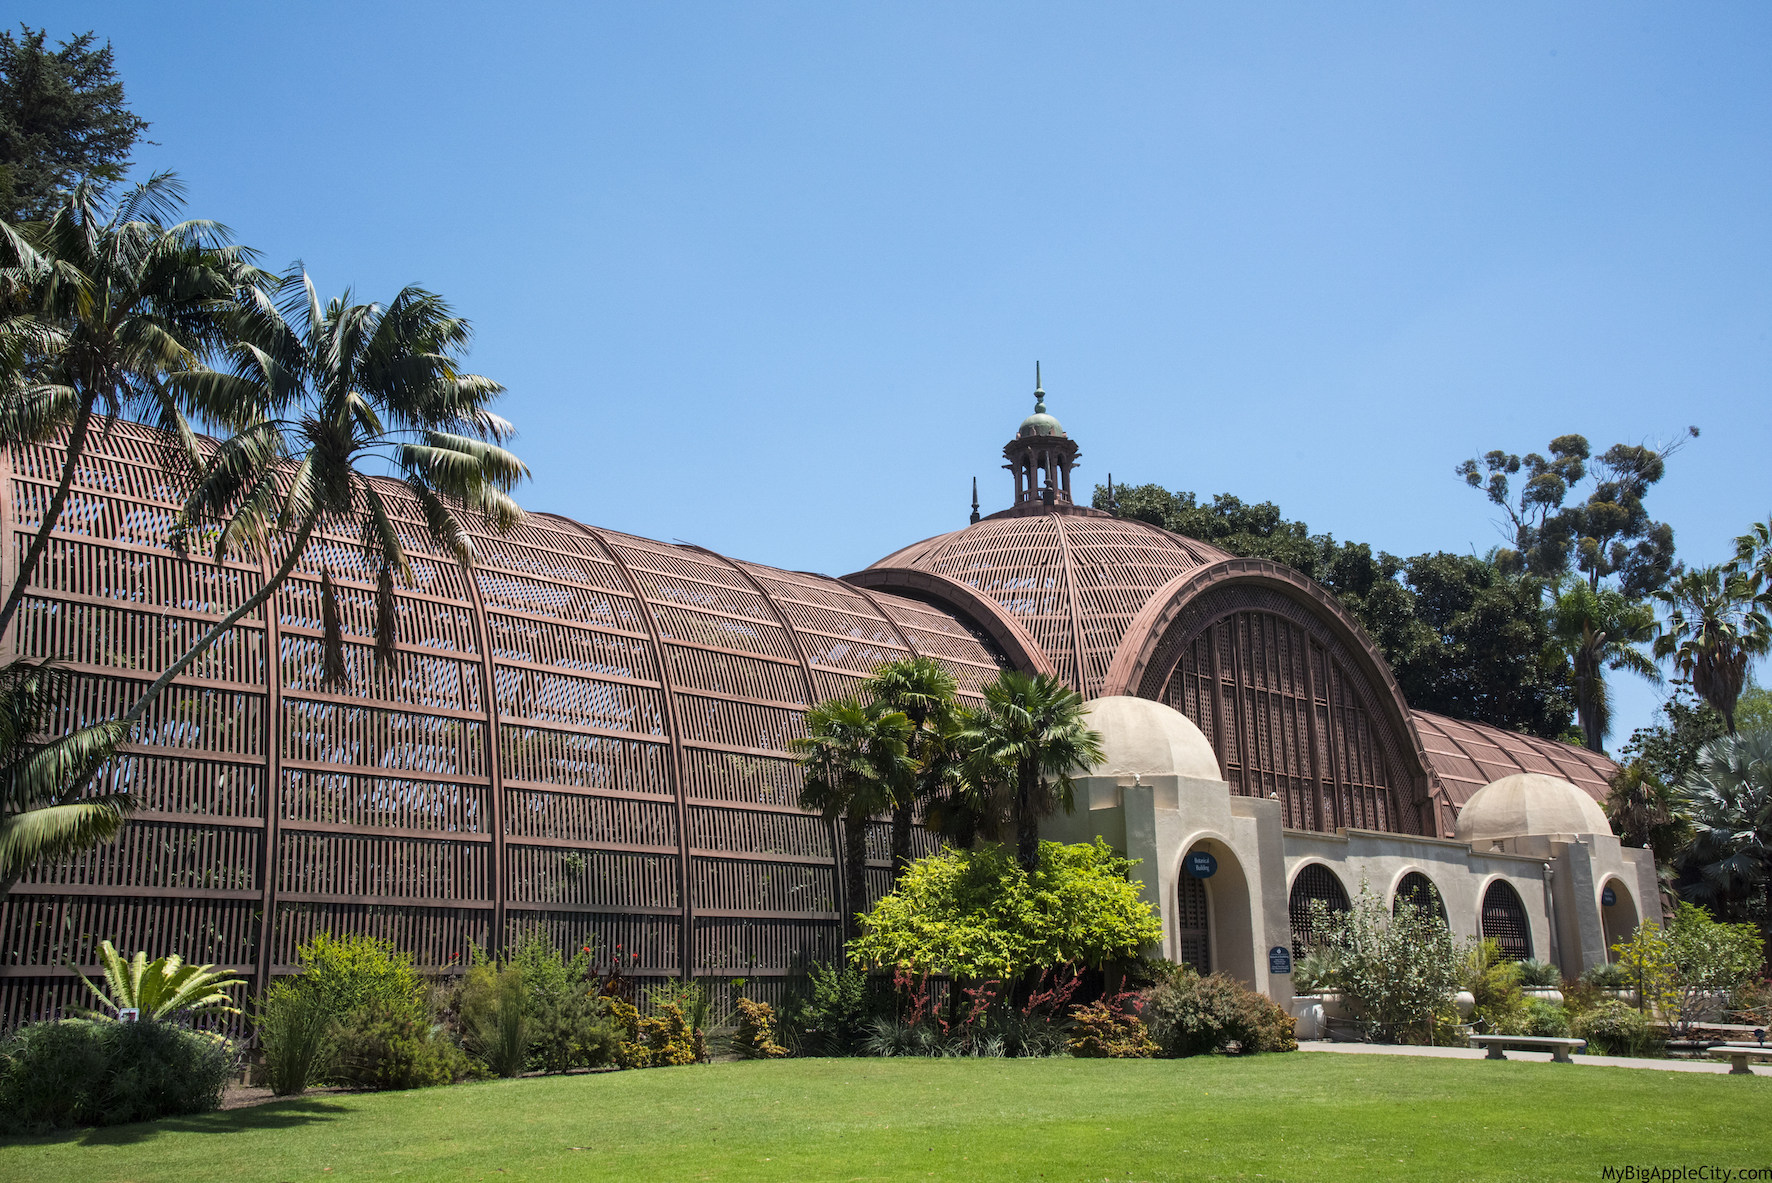 Botanical-Garden-San-Diego-Travel-Blogger-USA-MyBigAppleCity